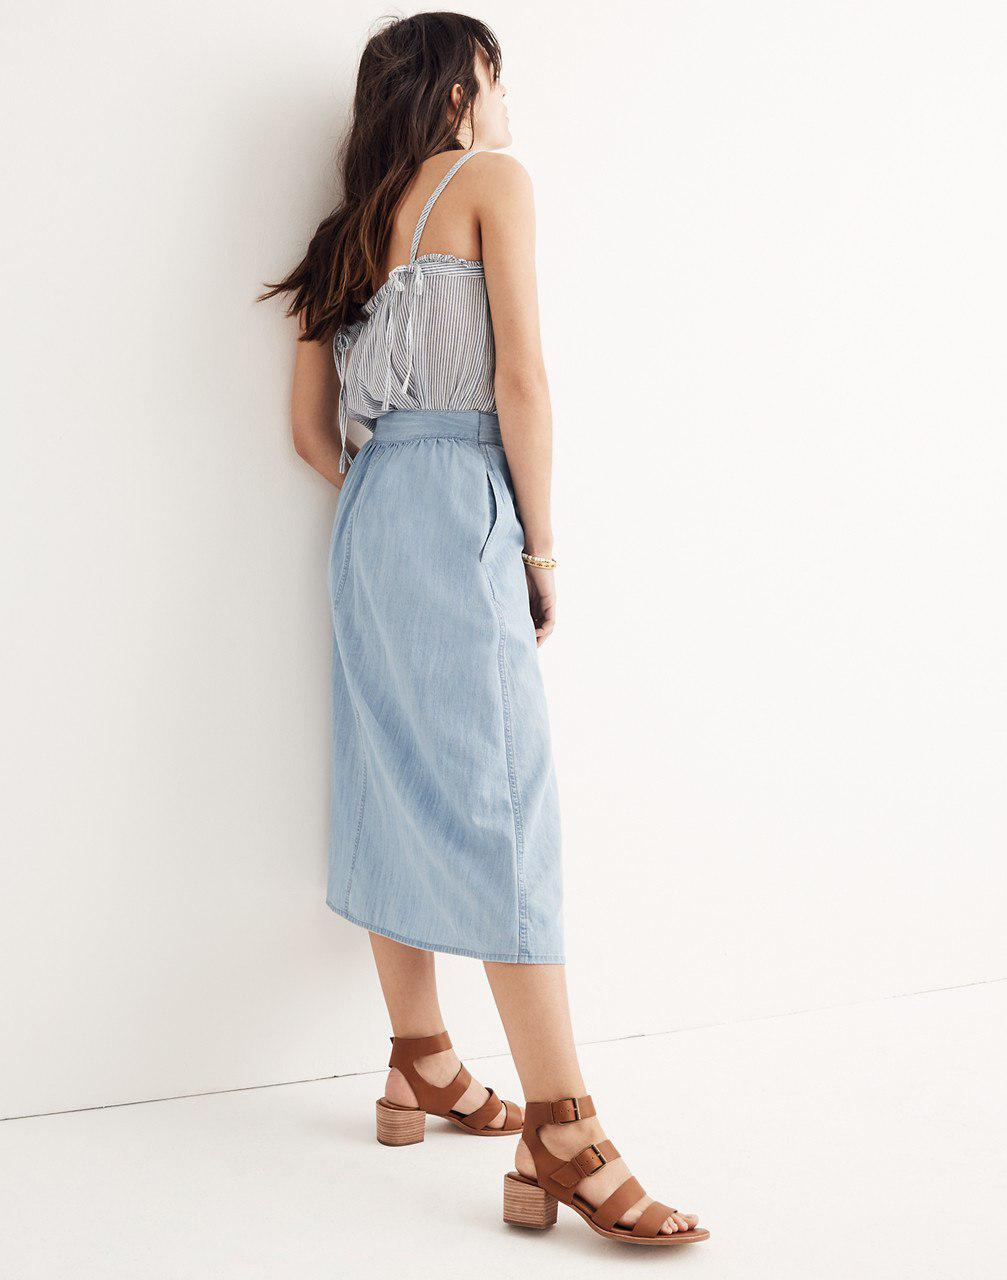 359a9bfb2 Madewell Palisade Chambray Stripe Button Front Midi Skirt